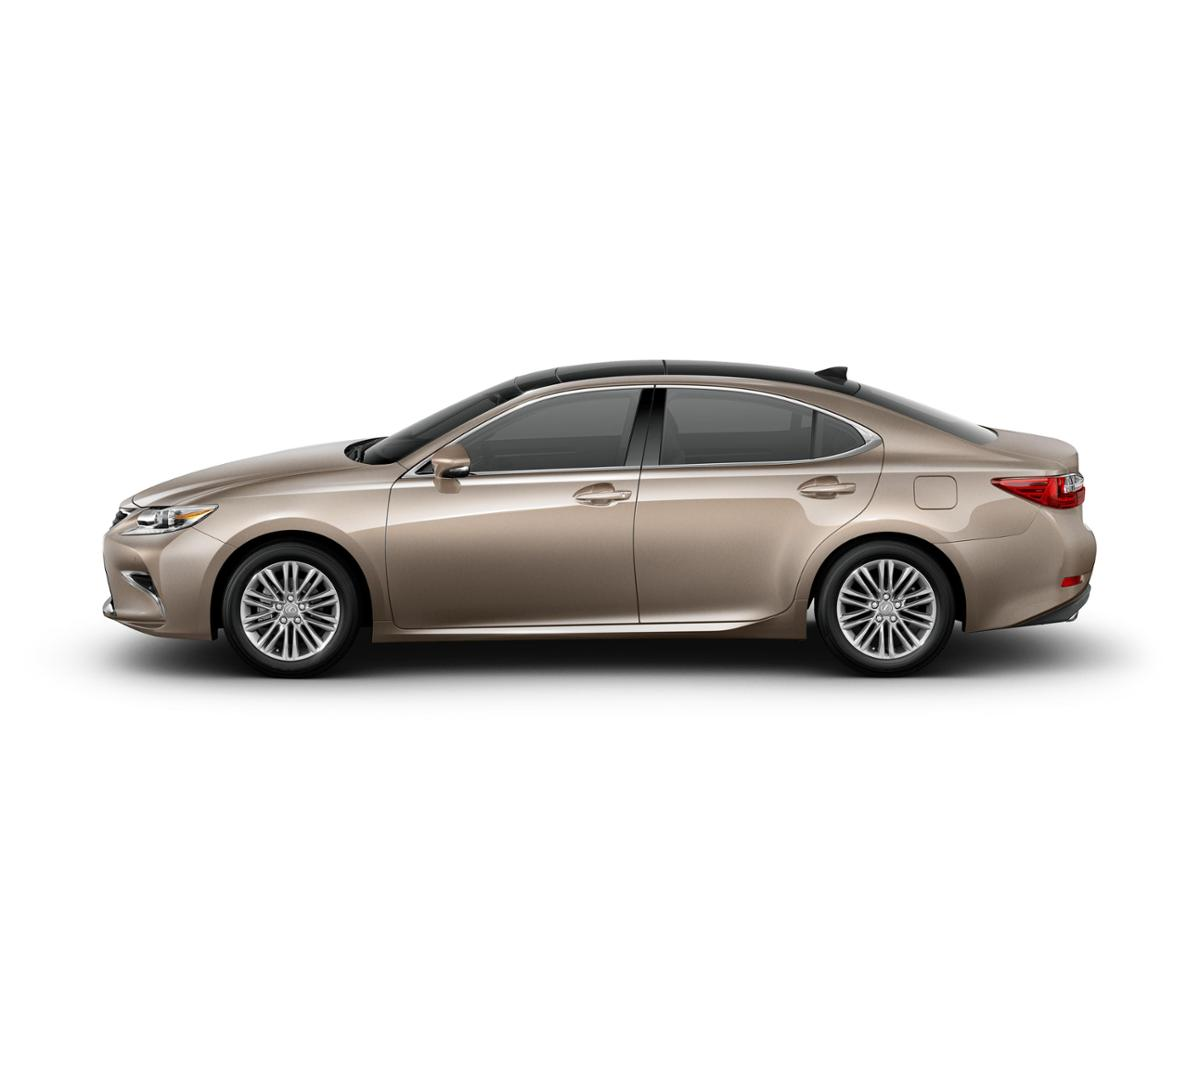 2017 Lexus ES 350 Vehicle Photo in Santa Barbara, CA 93105